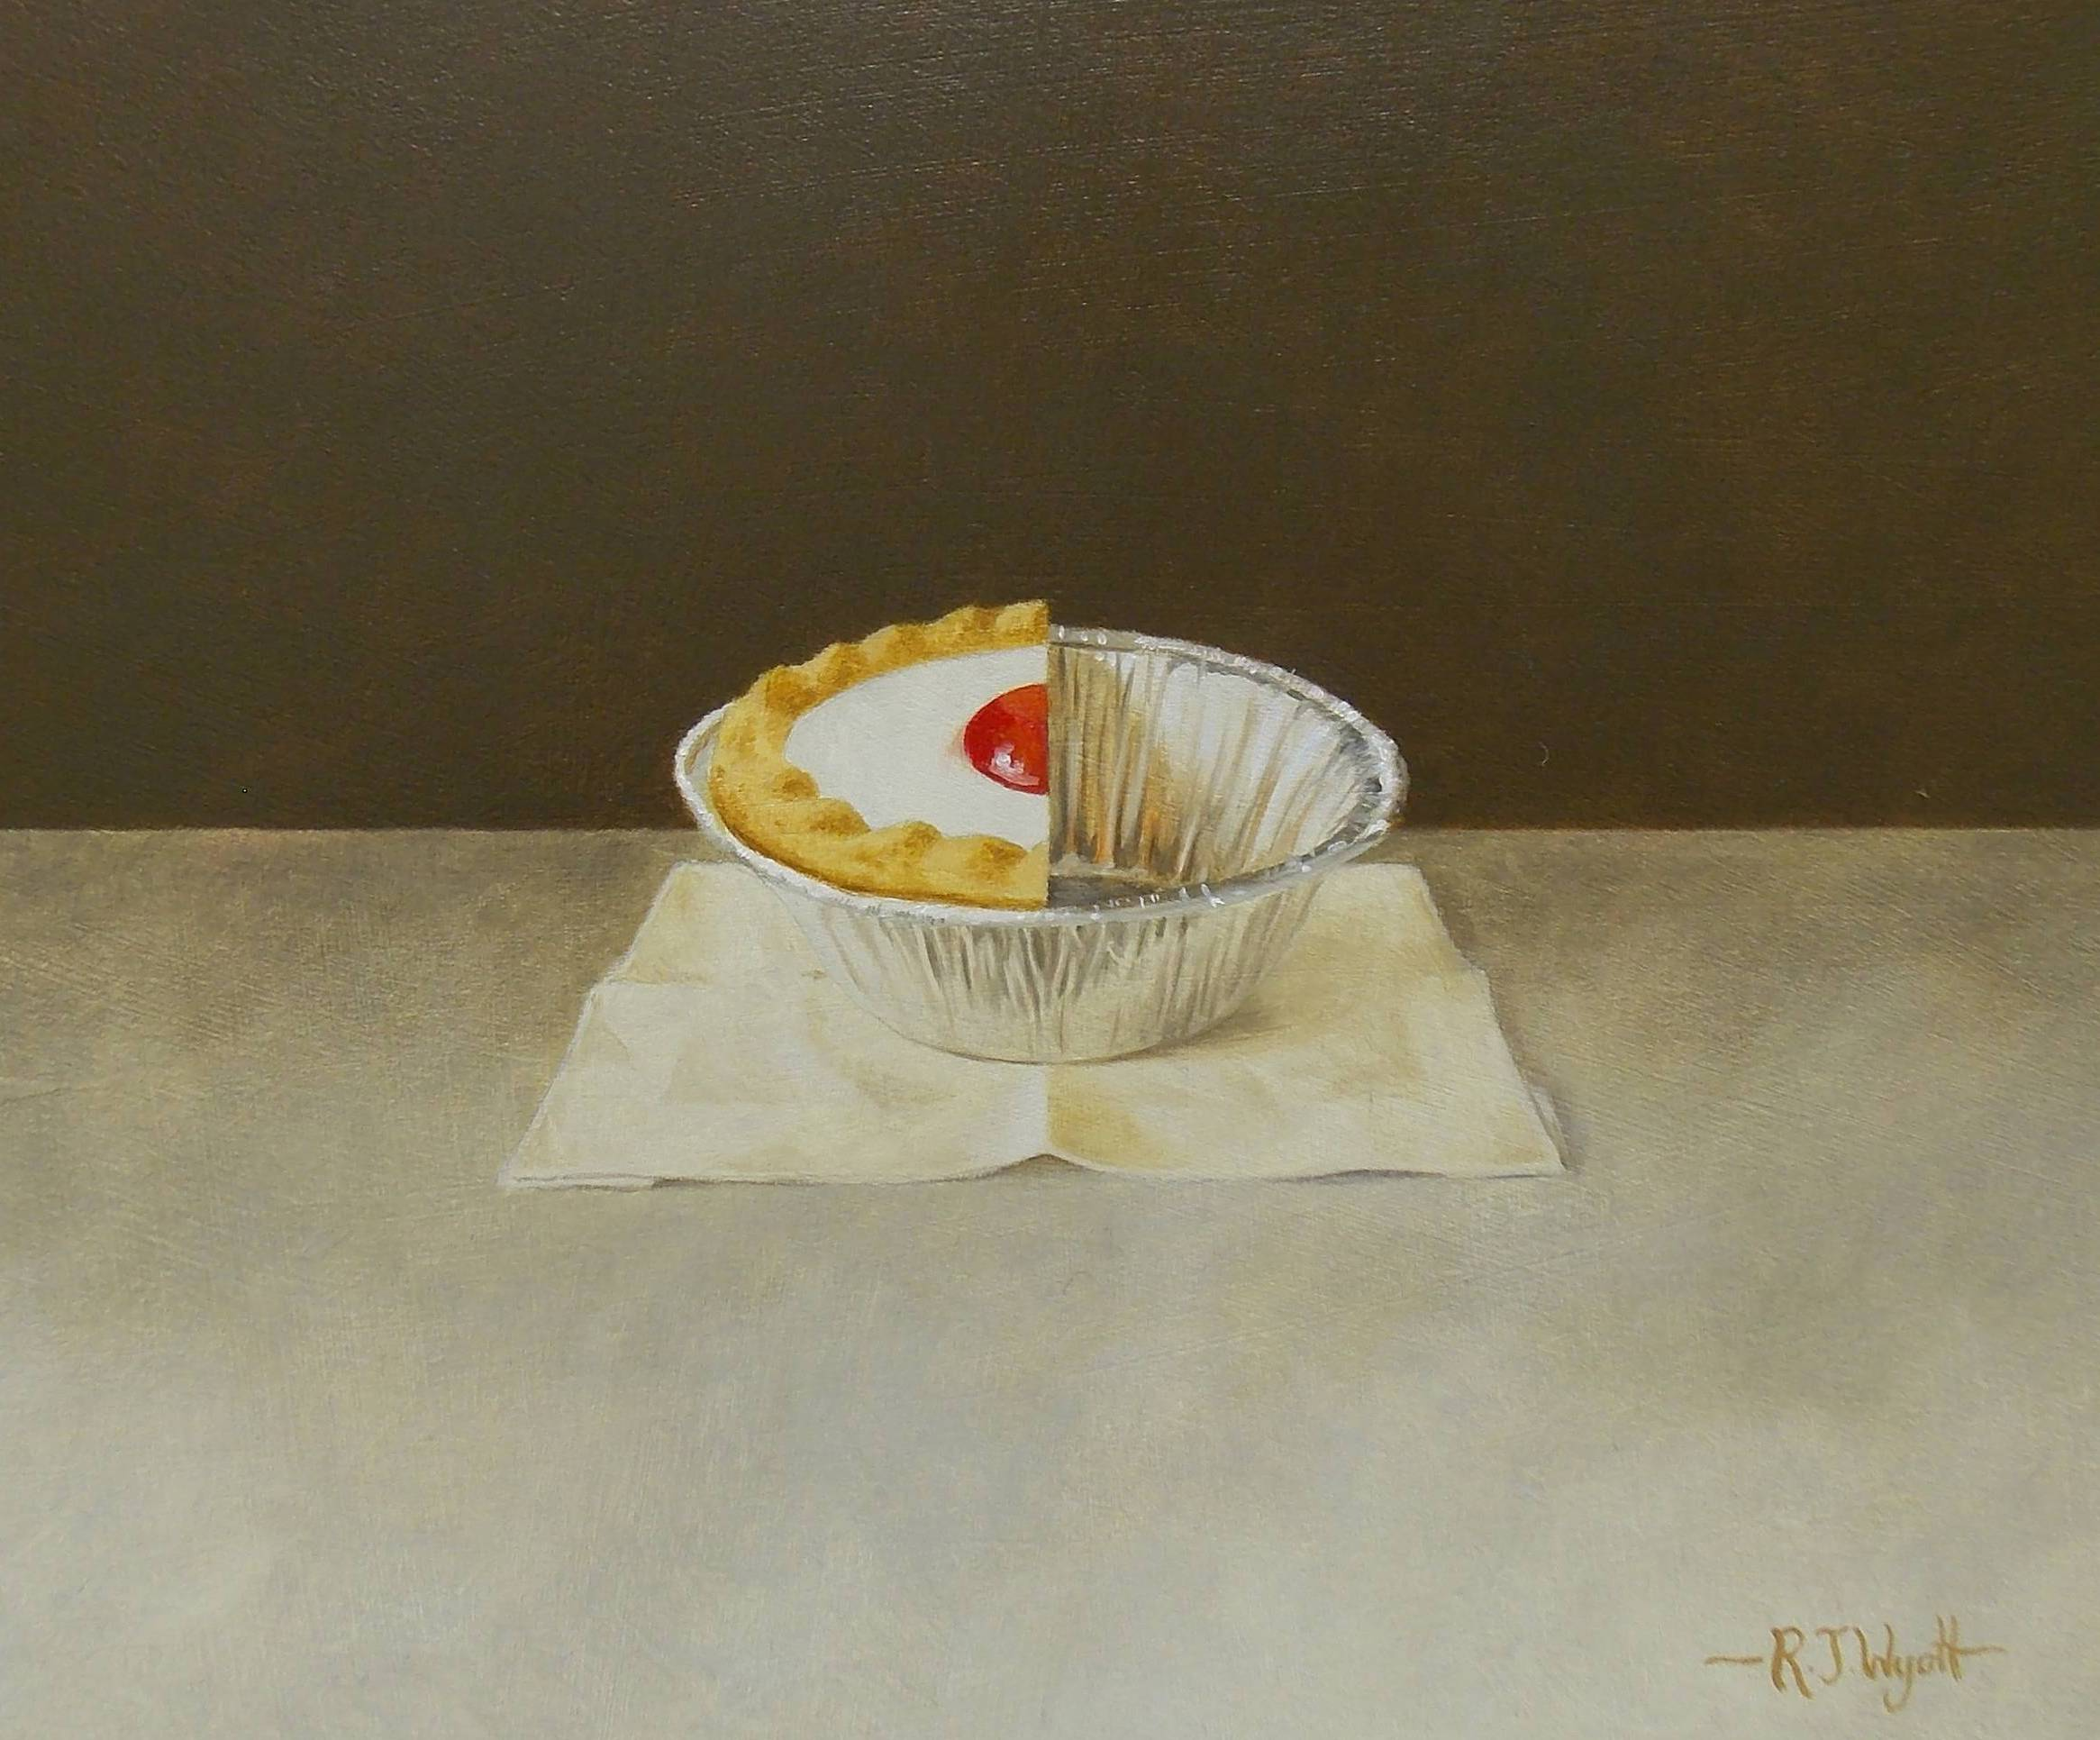 Robert J. Wyatt - Realist painter from Yorkshire injecting humour into still life depictions